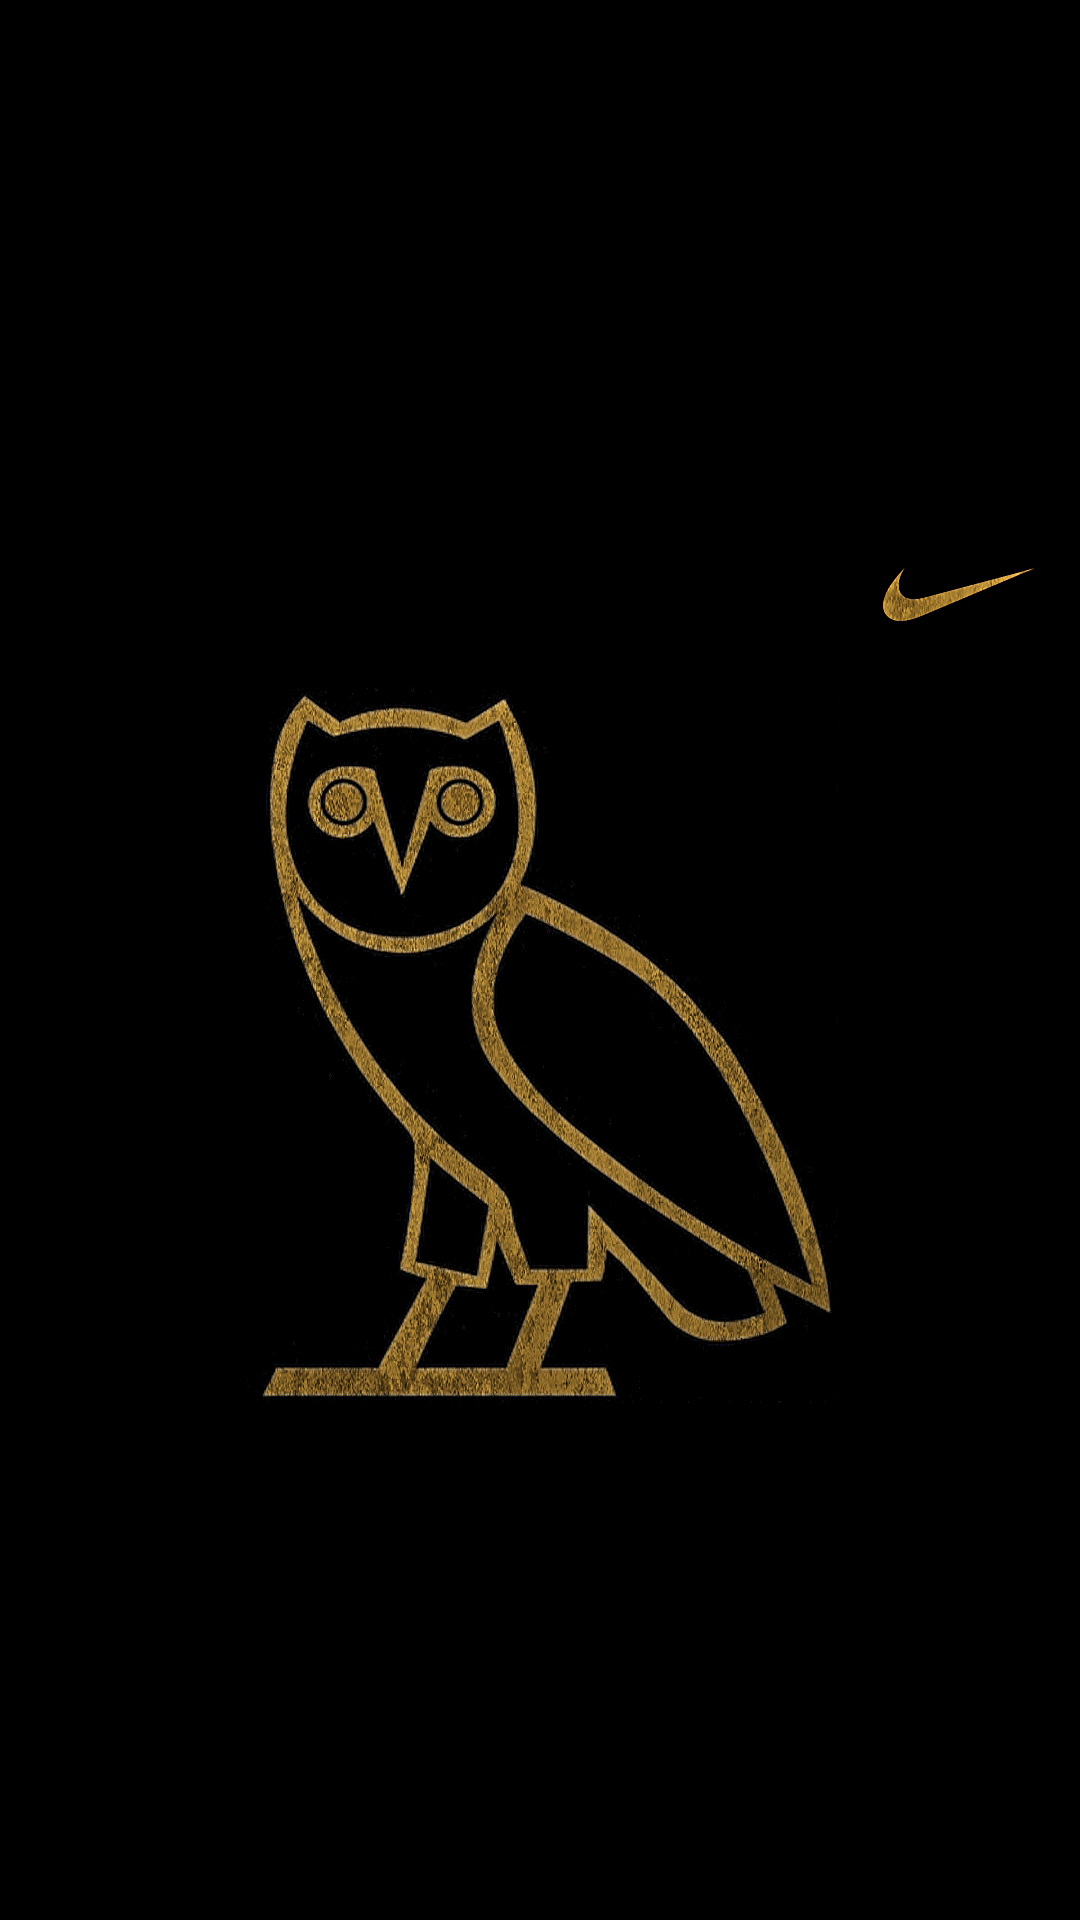 Ovo Wallpaper Android ovo wallpapers in 2020 Nike